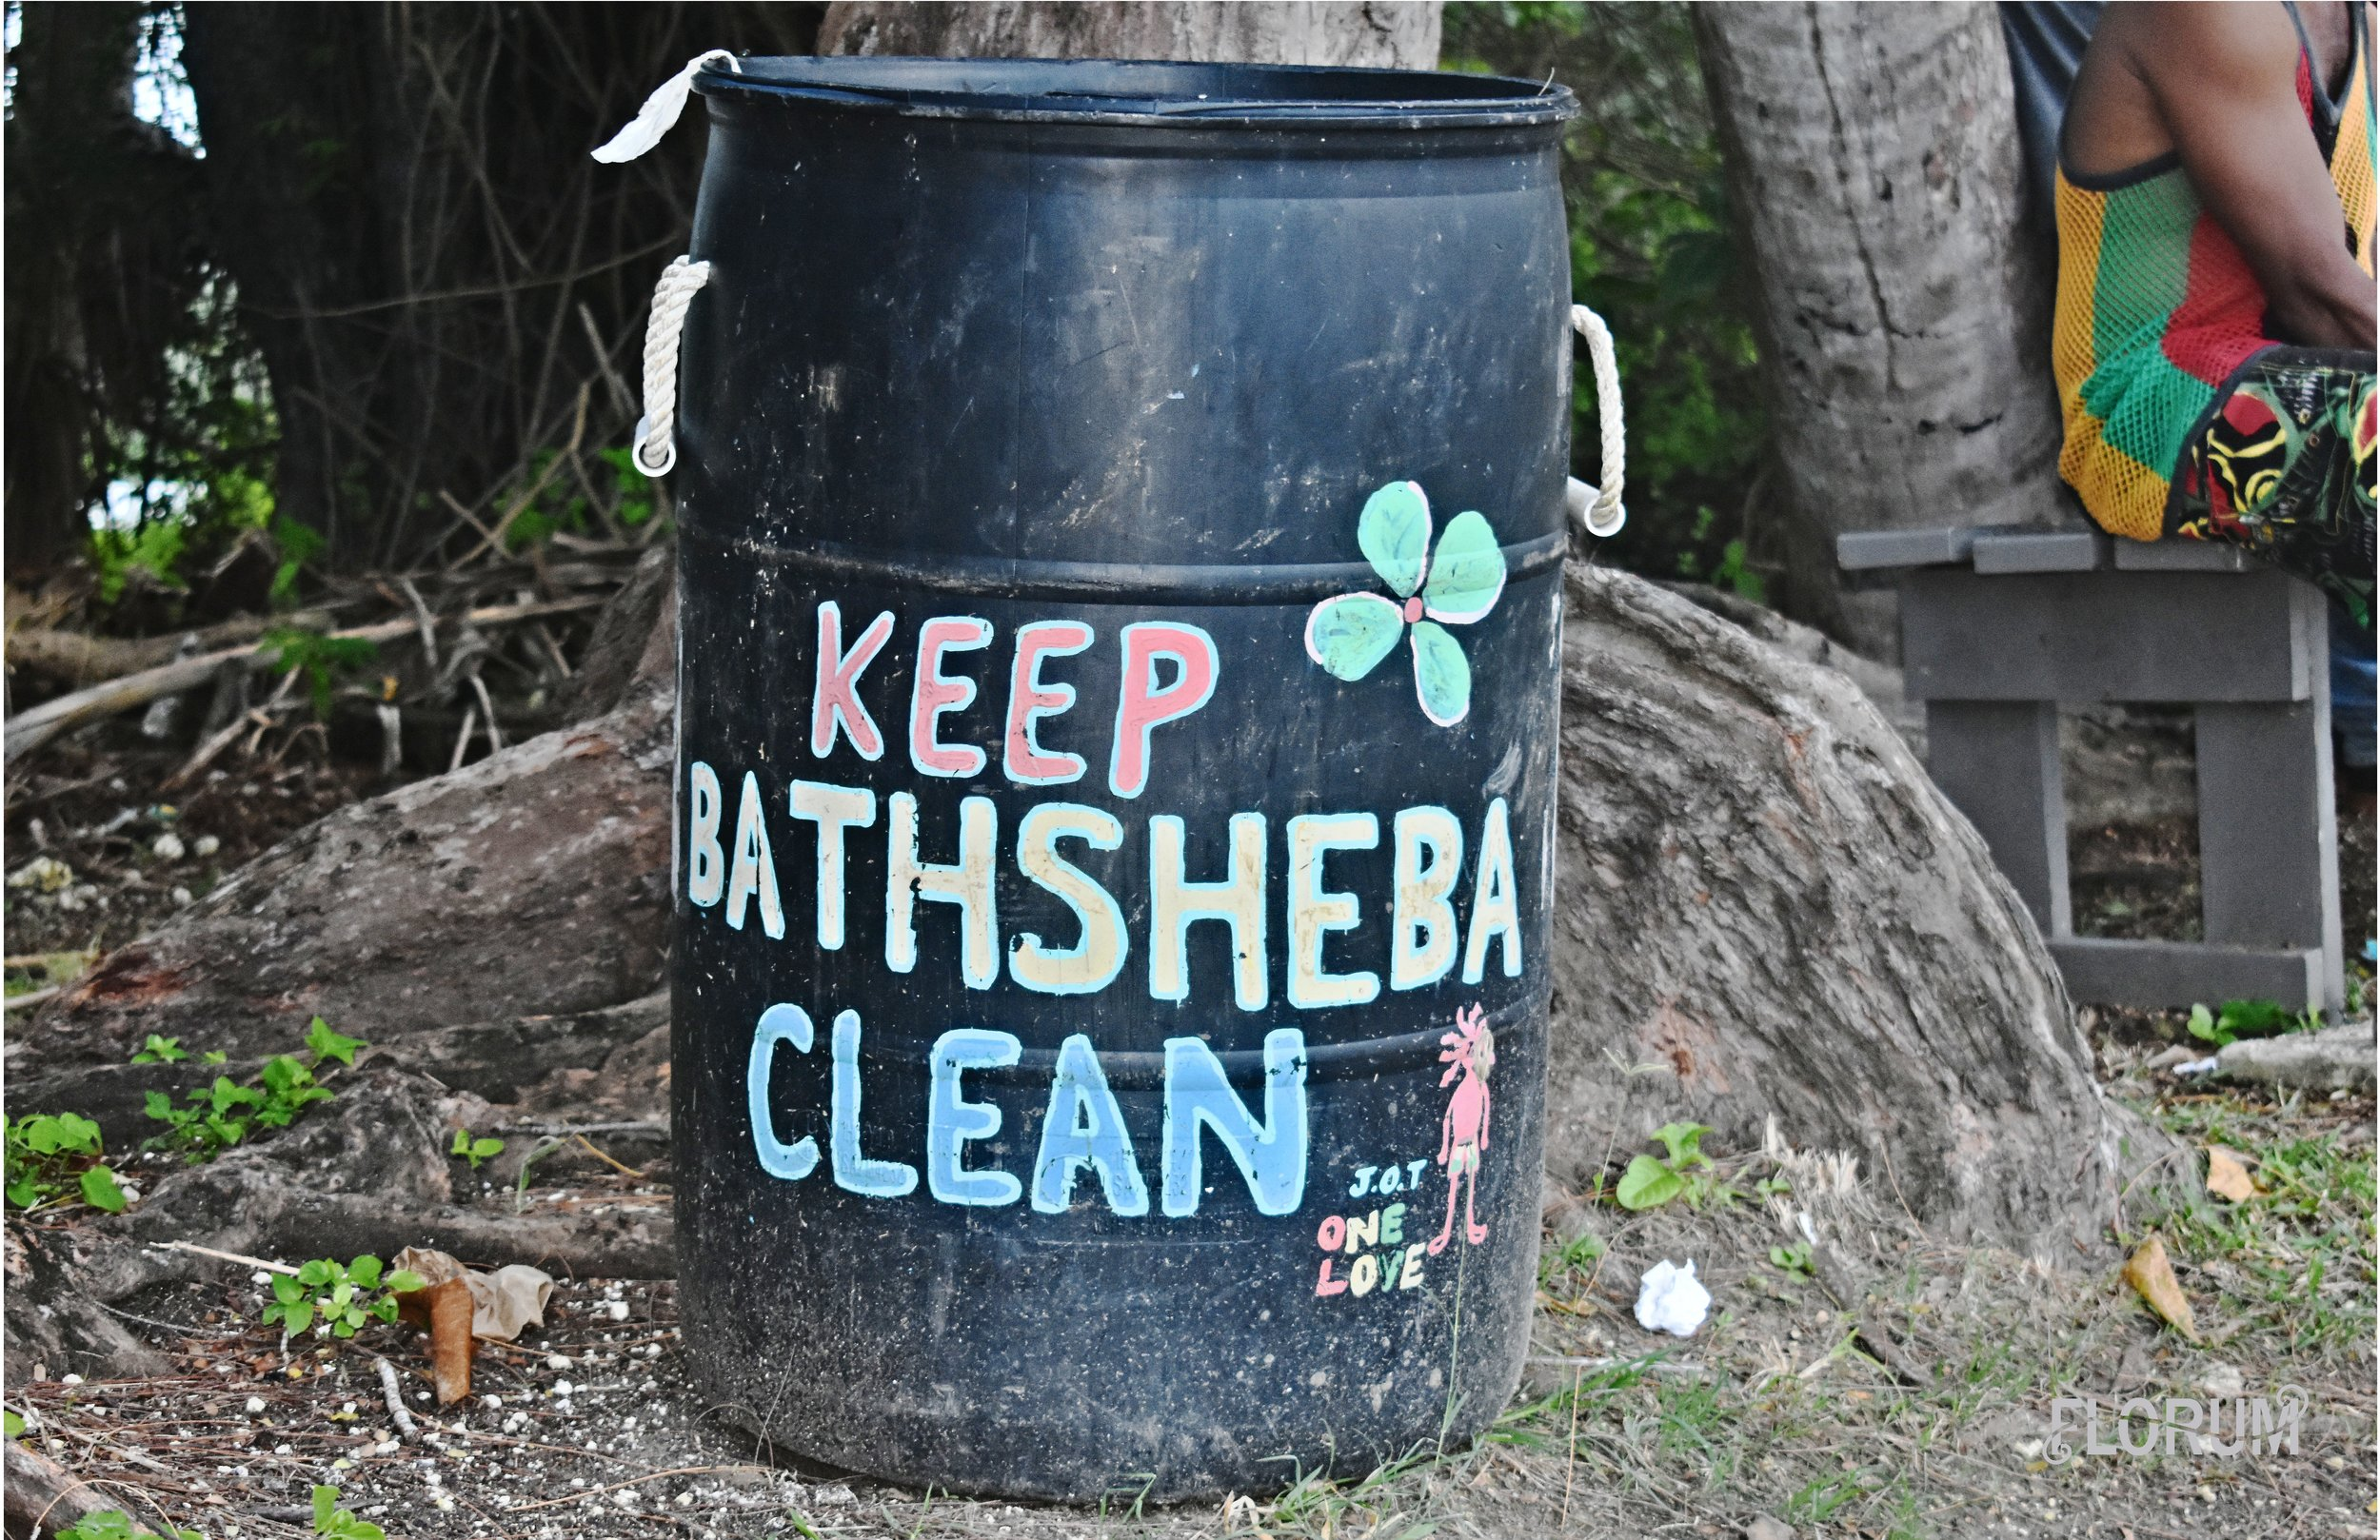 Whenever traveling, it is just so important to respect the environment and the home of the locals. My heart skipped a beat when I saw this trash can on my way back to ECO Lifestyle + Lodge from Bathsheba beach.   Not pictured is the recycling for glass, plastic, and paper that is out front of ECO Lifestyle + Lodge in the parking lot.